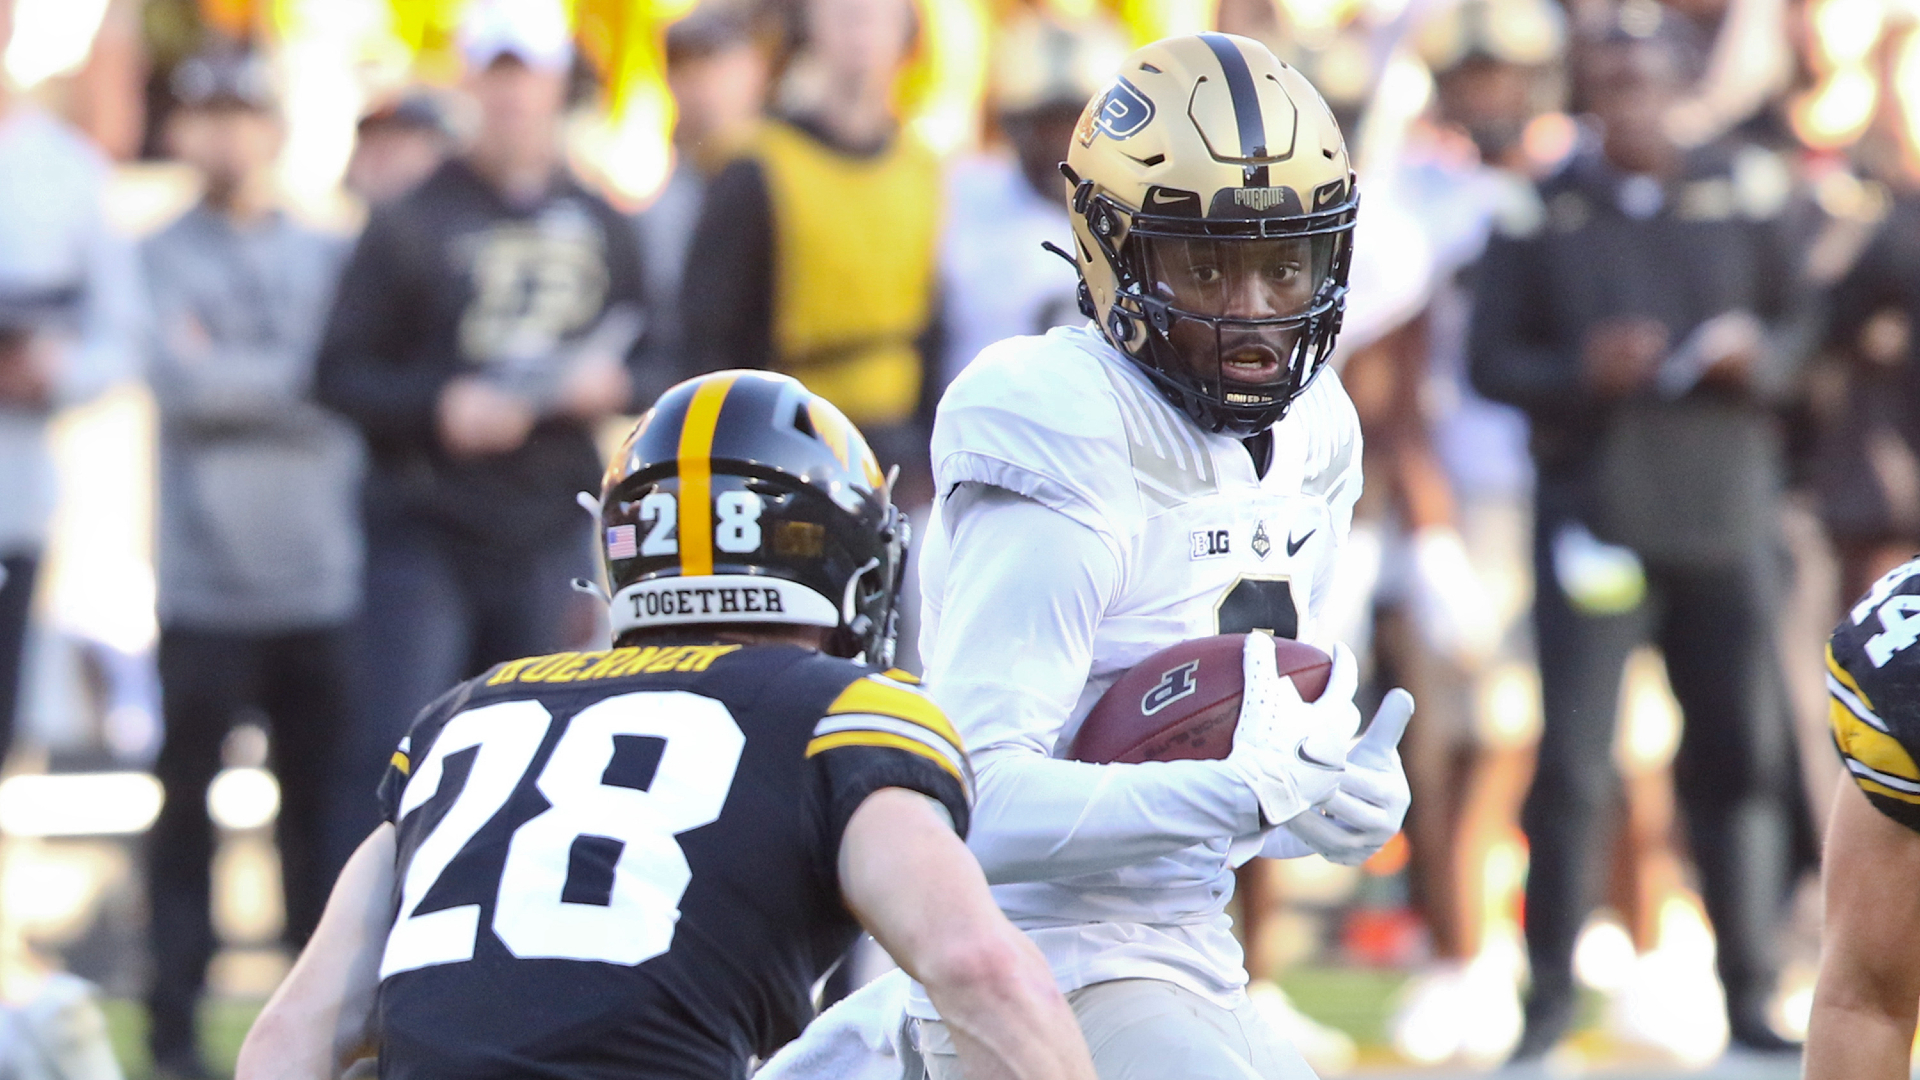 College football polls: Updated AP Top 25, Coaches Poll rankings after Week 7